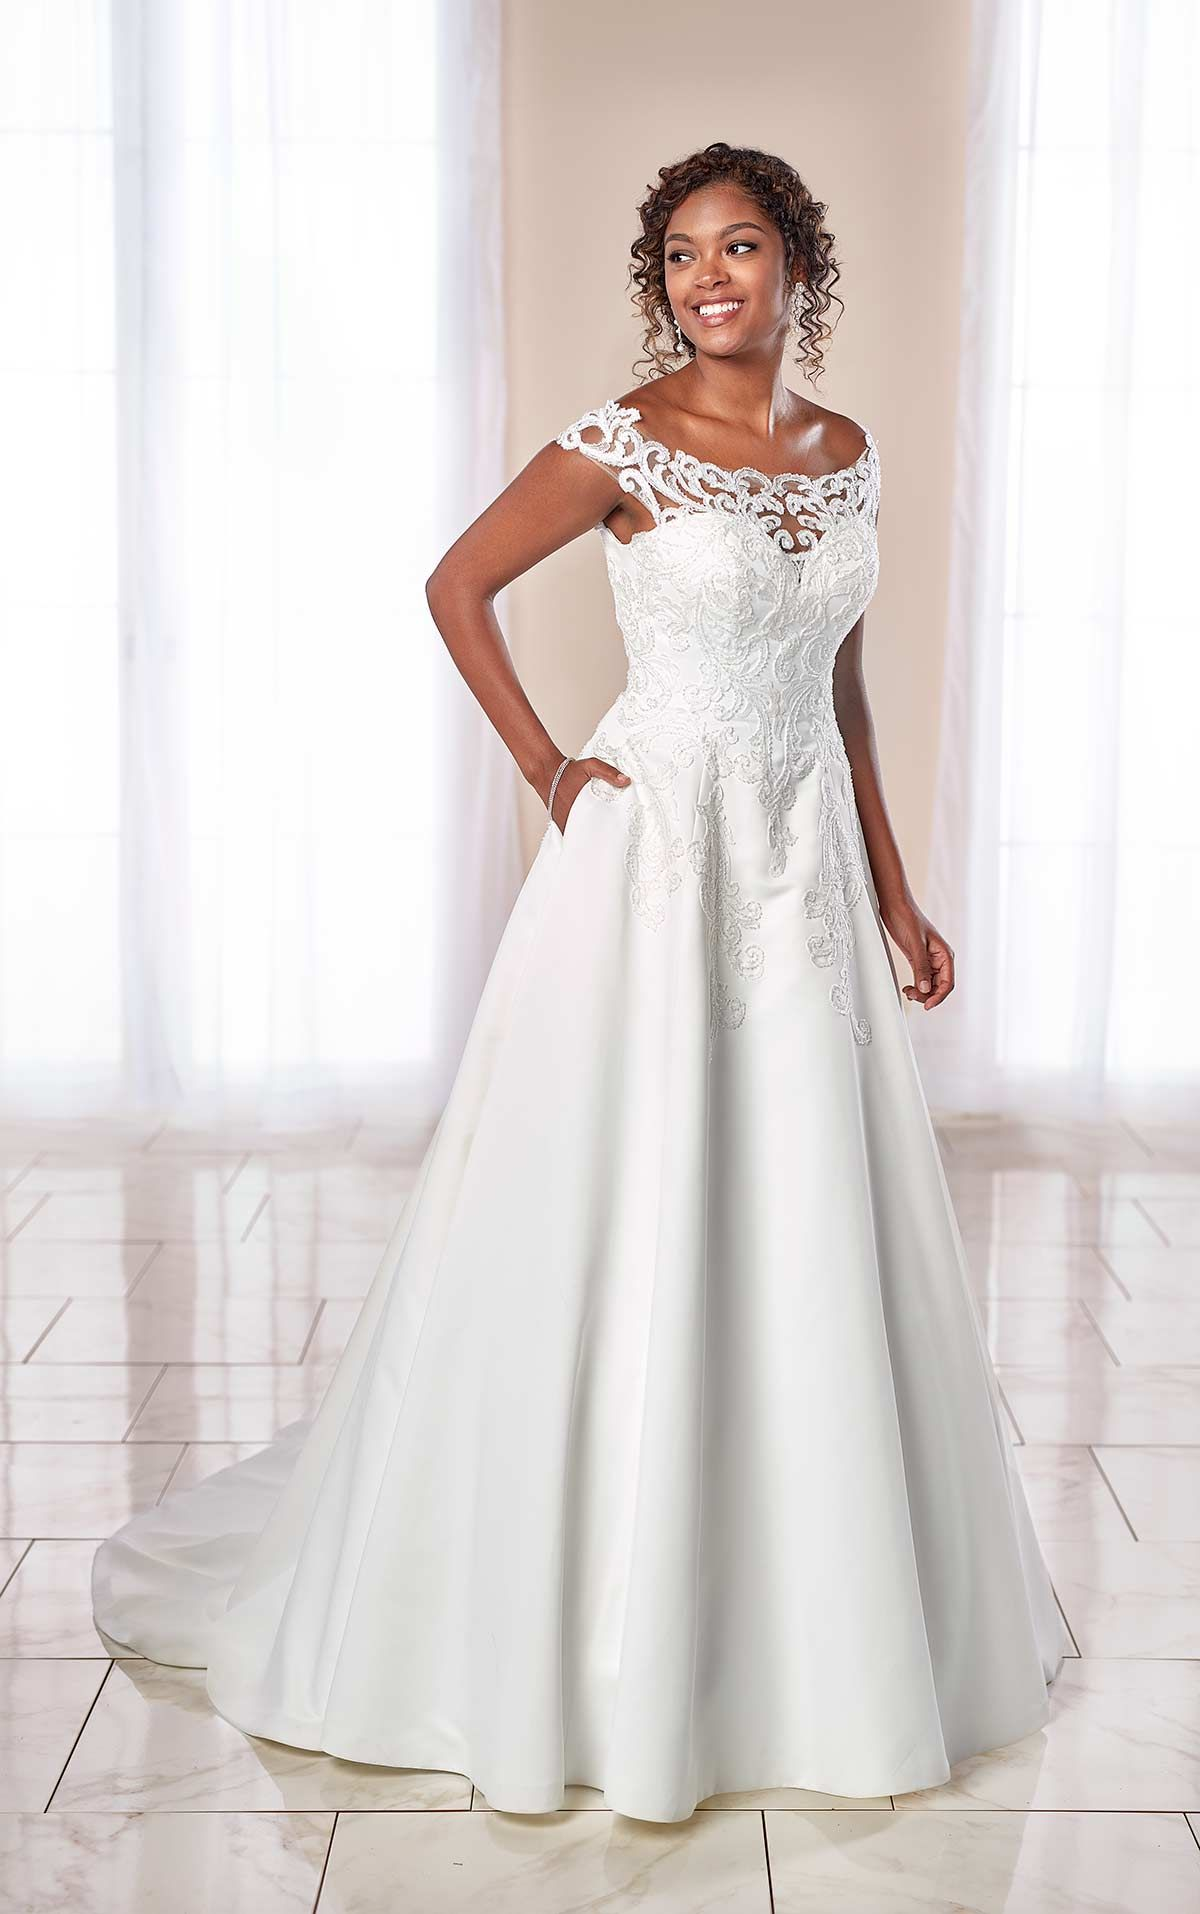 Modern Lace A Line Wedding Gown With Pockets Stella York Wedding Dresses In 2020 Stella York Wedding Dress York Wedding Dress Wedding Dresses